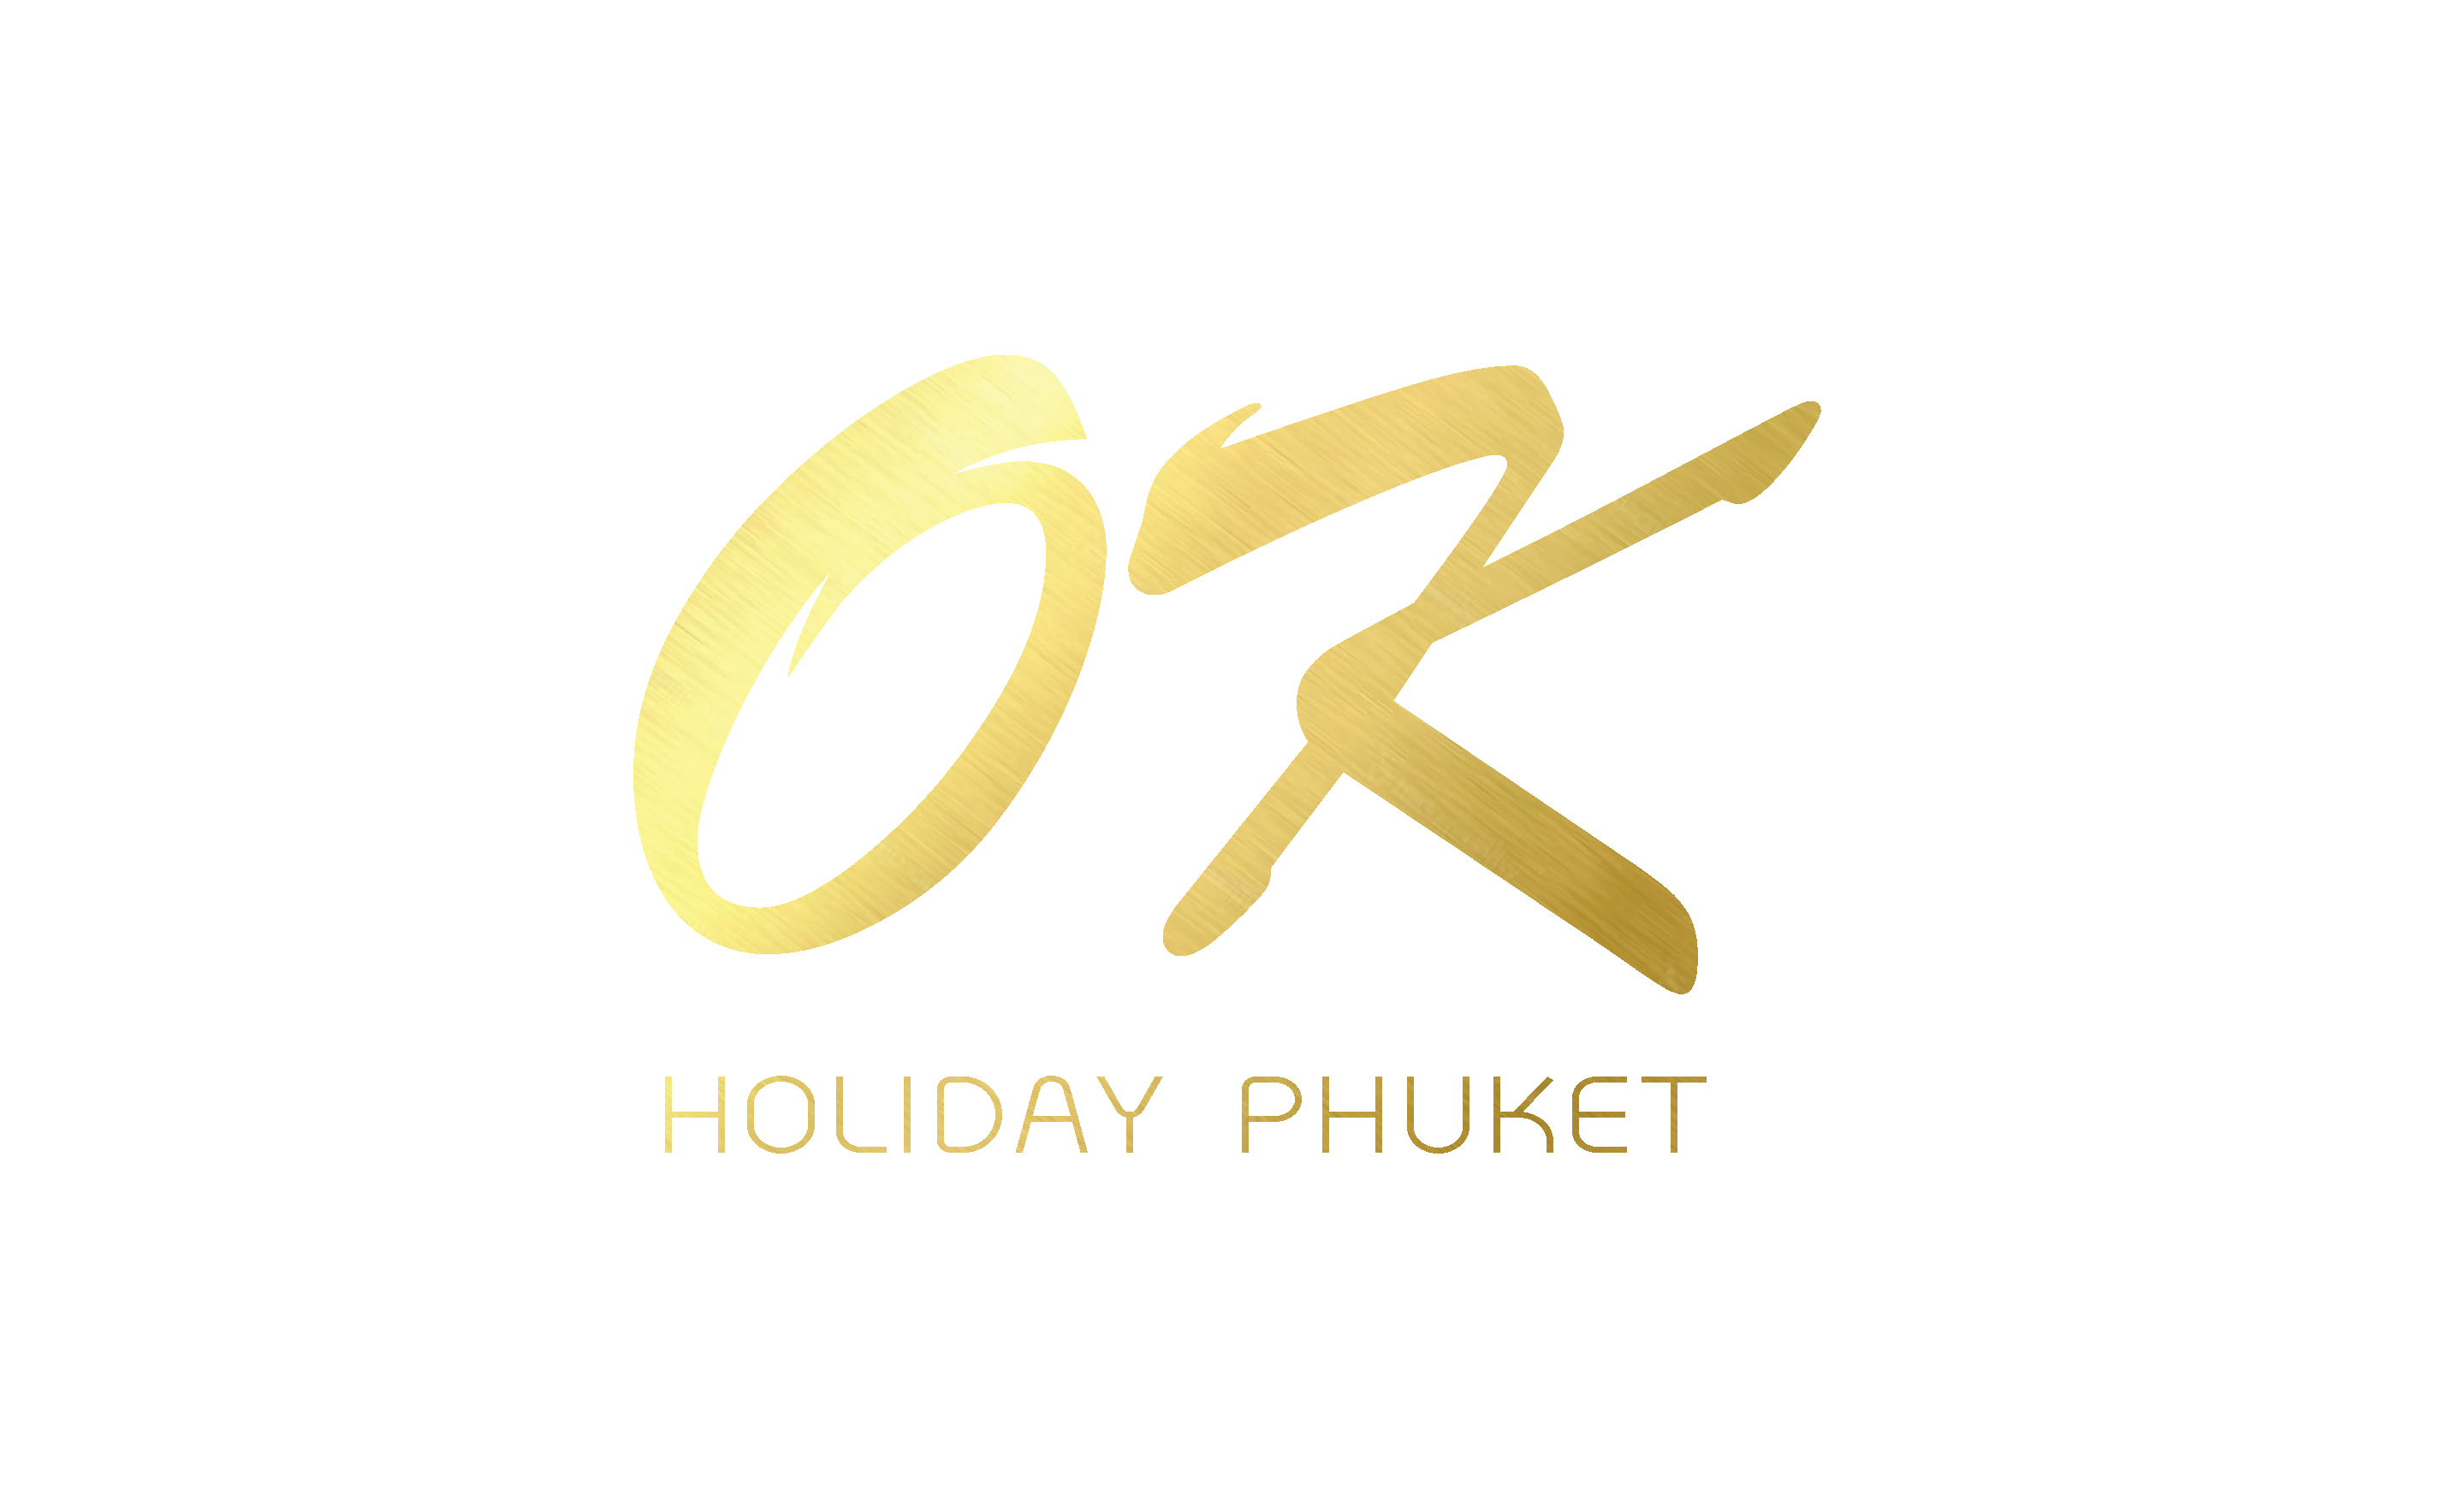 OK Holiday logo design by springboard Solutions